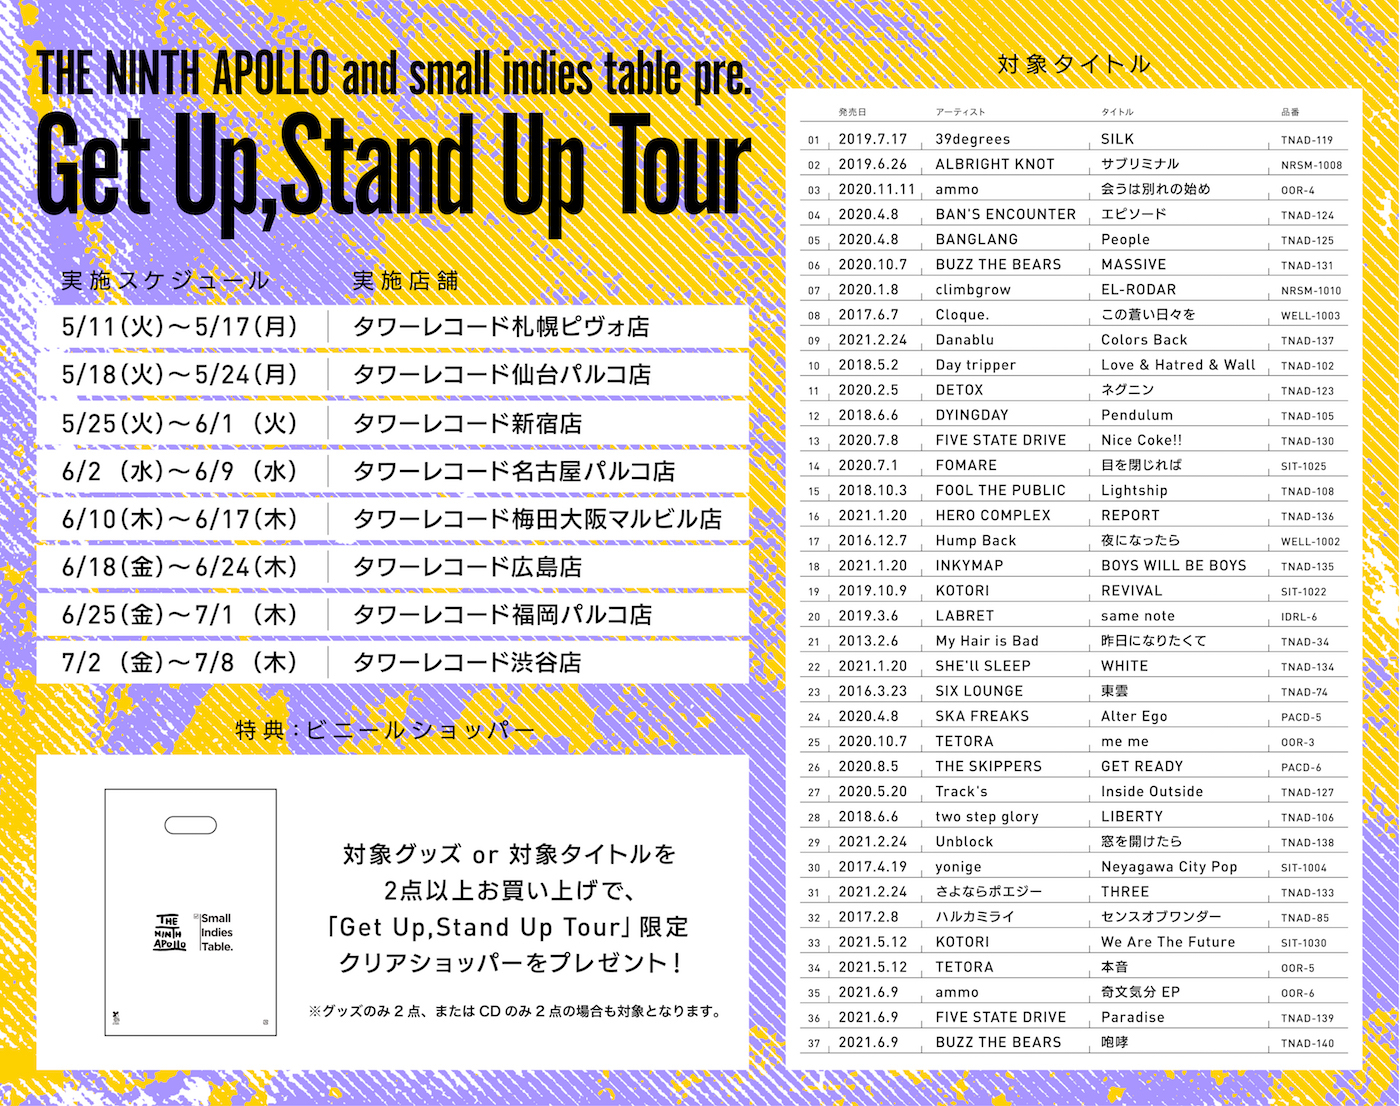 THE NINTH APOLLO and small indies table pre. 『Get Up,Stand Up Tour』